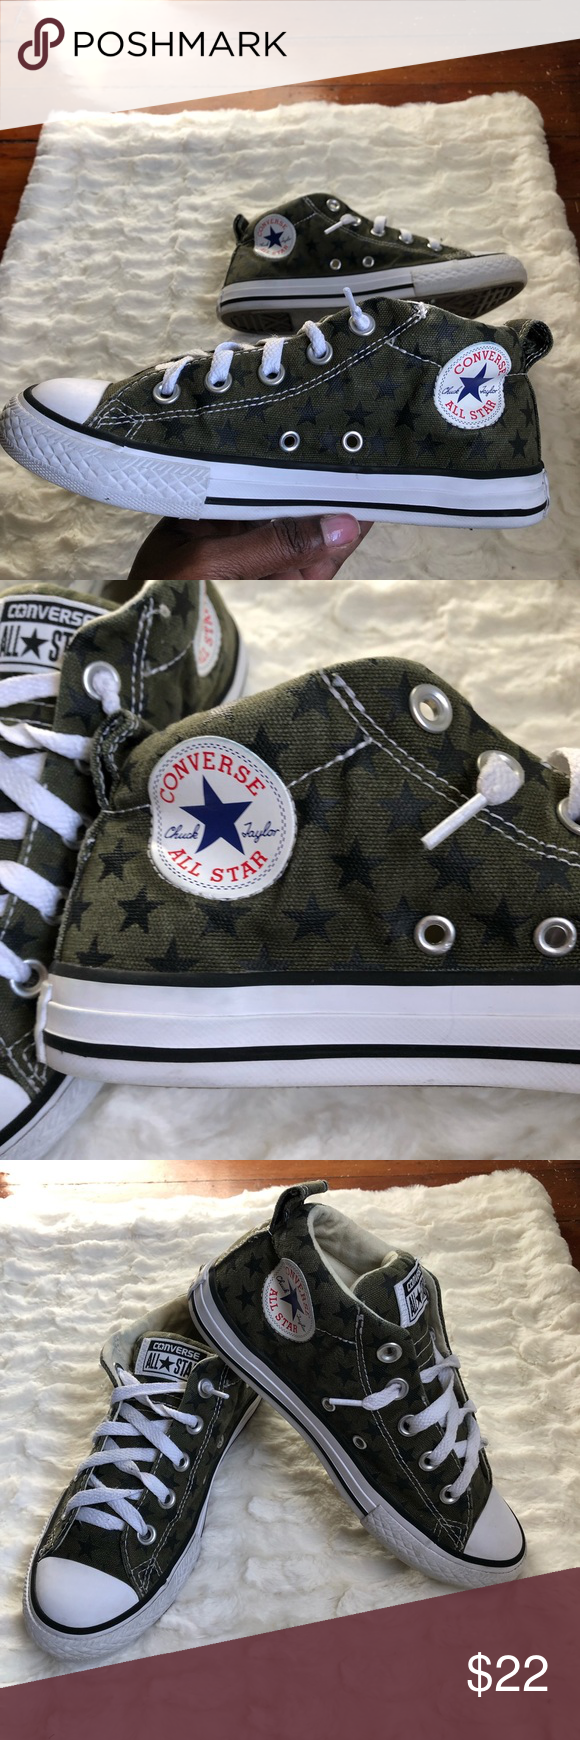 dcfc1e4b58b2 Converse All Stars Army Green And Black Stars  Good pre owned condition   Green with black star pattern  Can be for boy or girl  Size 2 Converse Shoes  ...